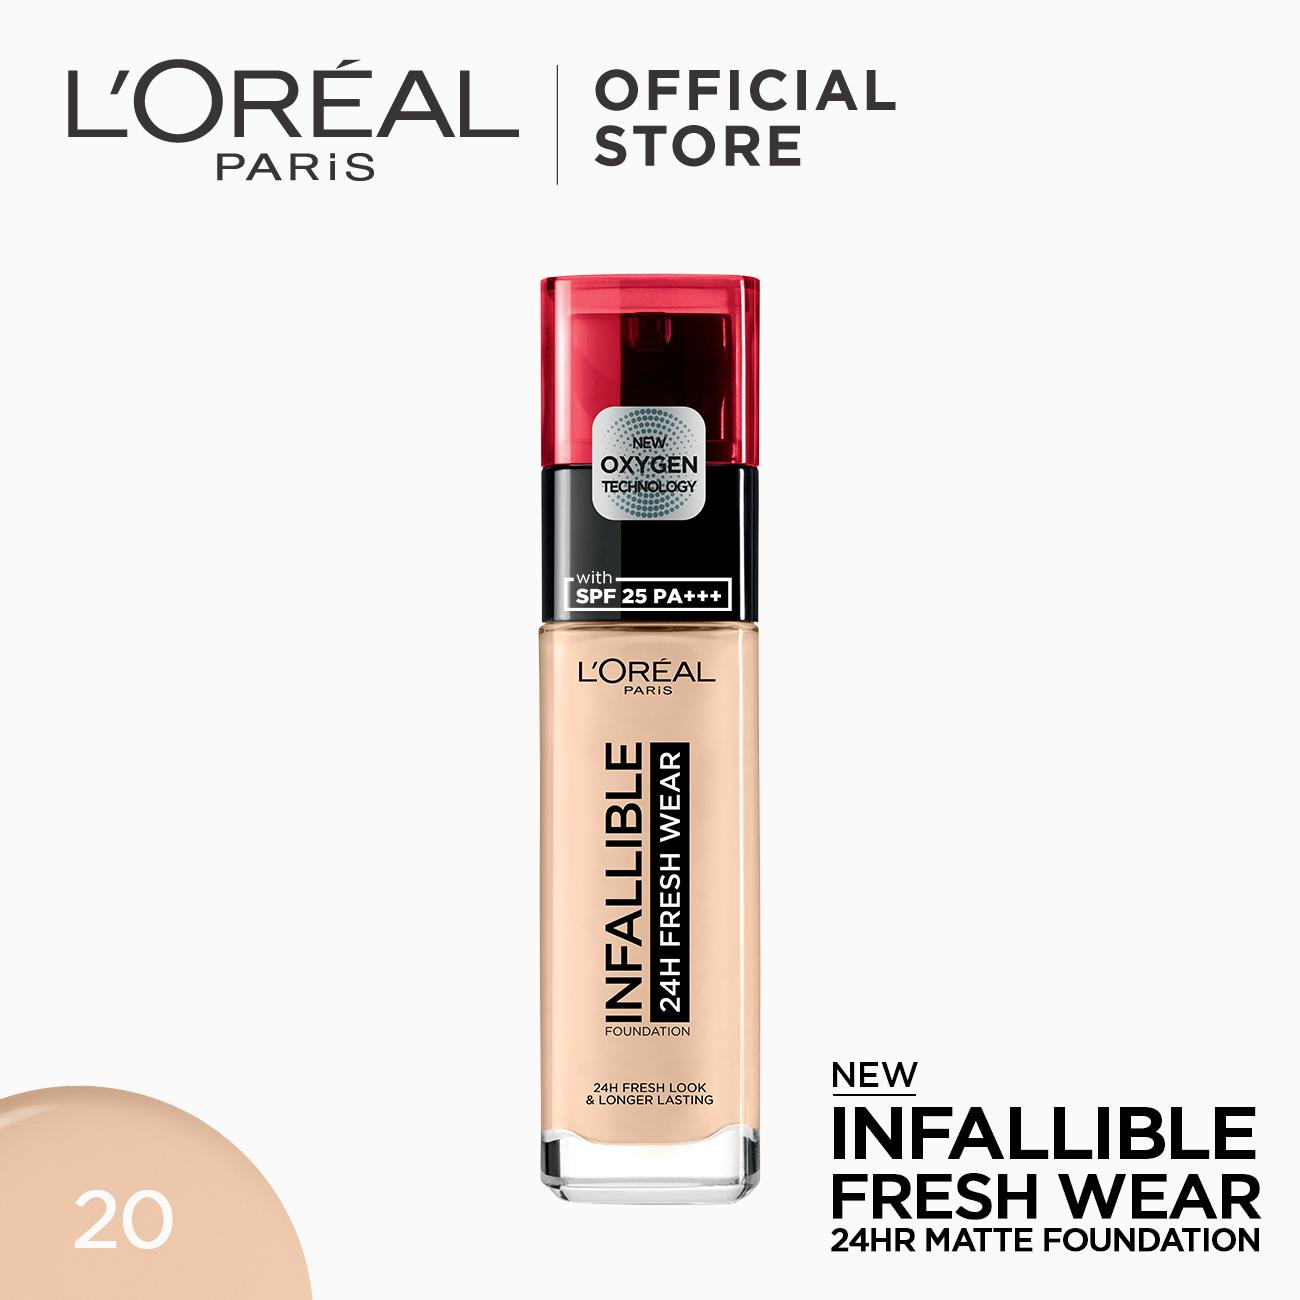 Infallible 24HR Fresh Wear Foundation by LOreal Paris Philippines